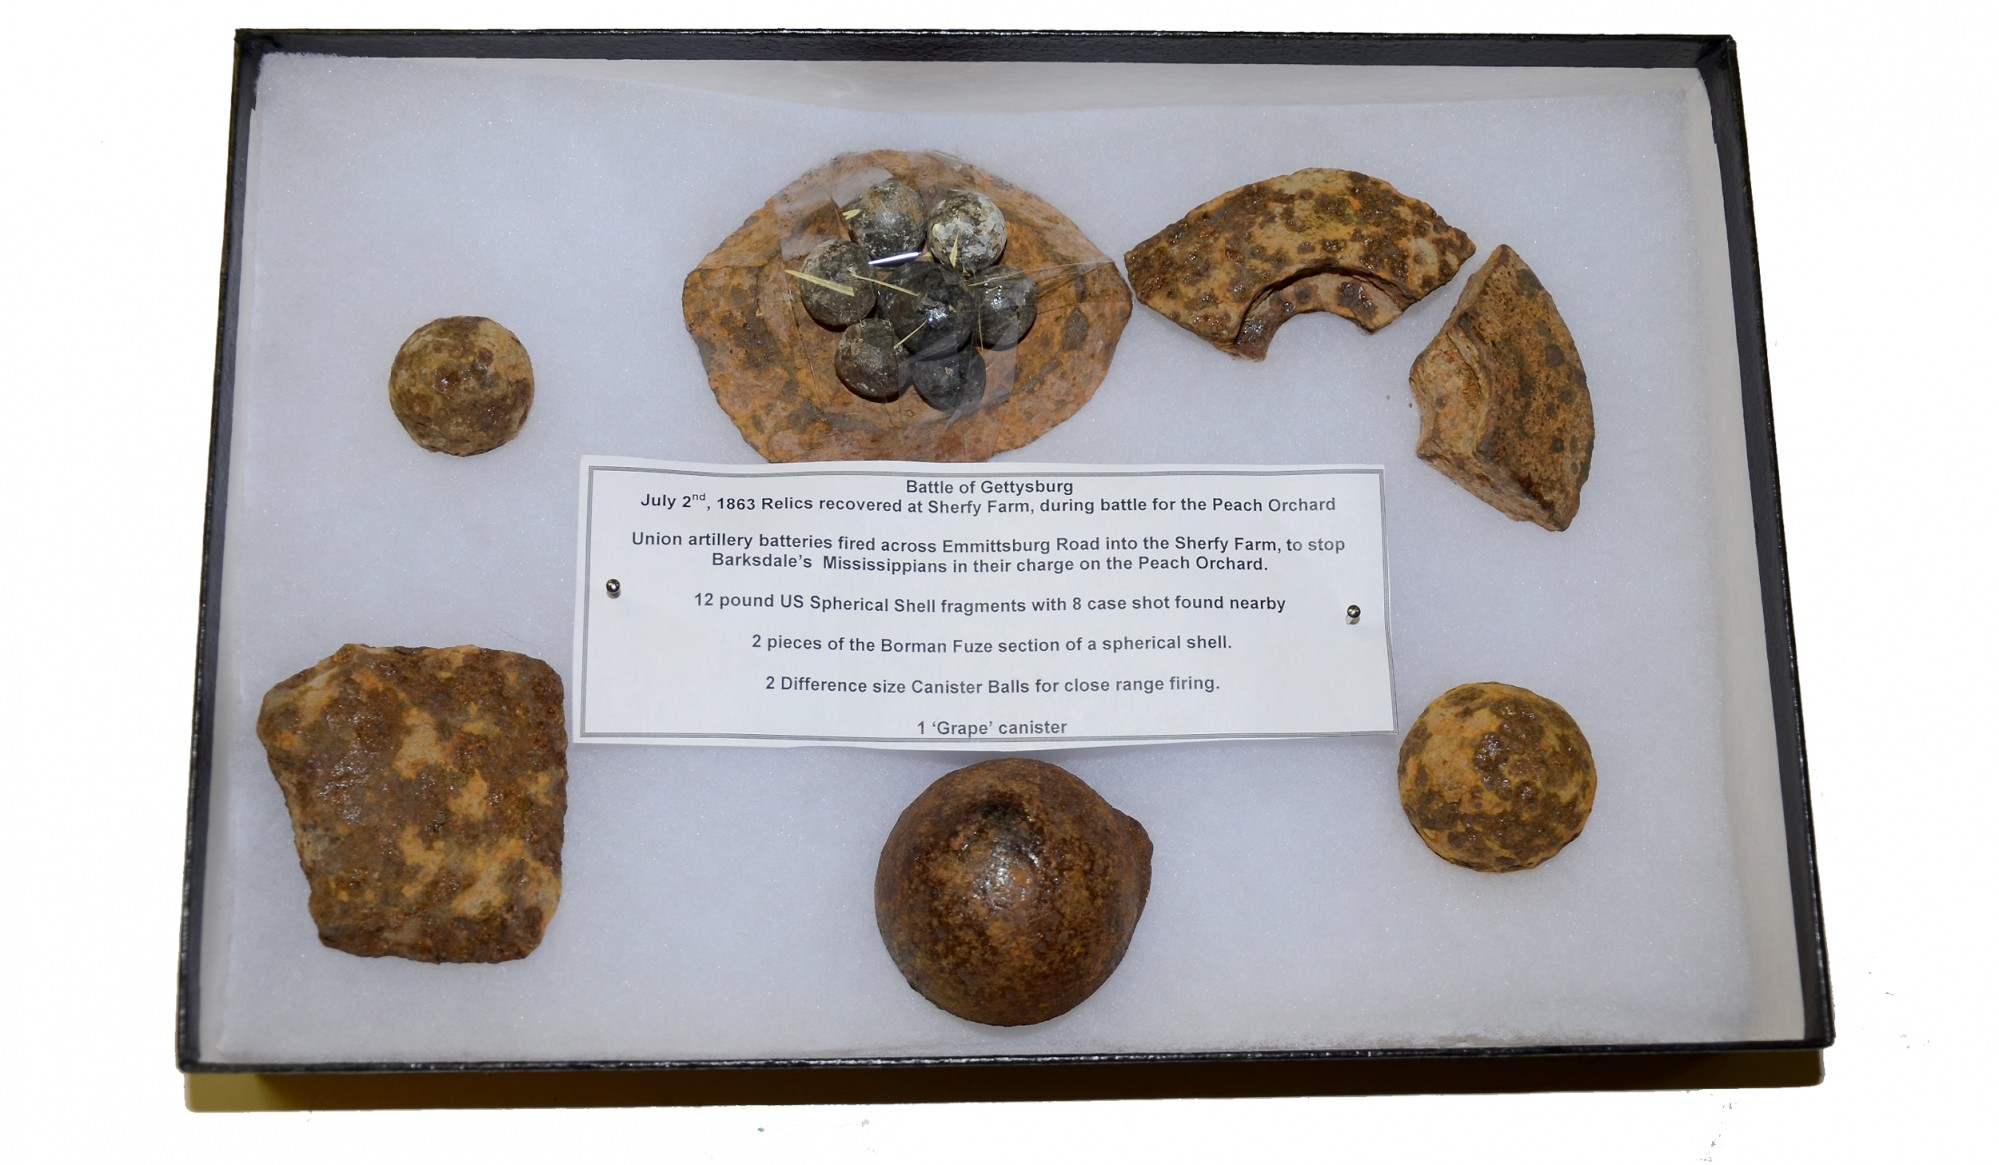 RELICS RECOVERED AT THE SHERFY FARM AT GETTYSBURG